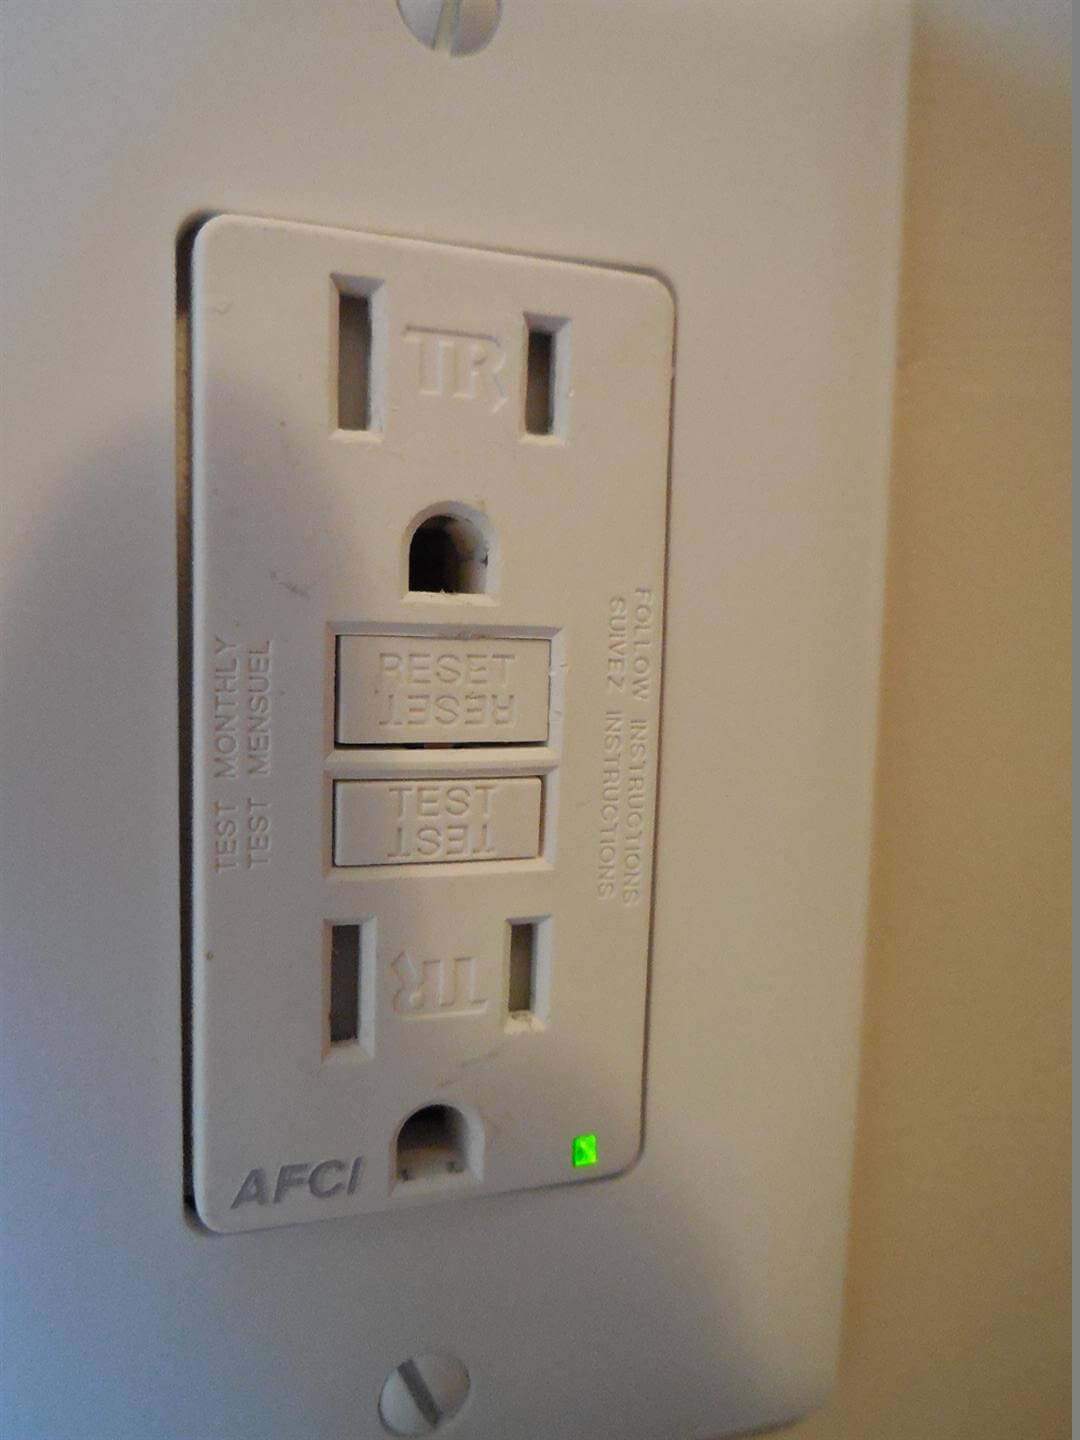 20 Amp Gfci On 15 Circuit New Electrical Safety Requirement Afci Protection For Replacement Outlets